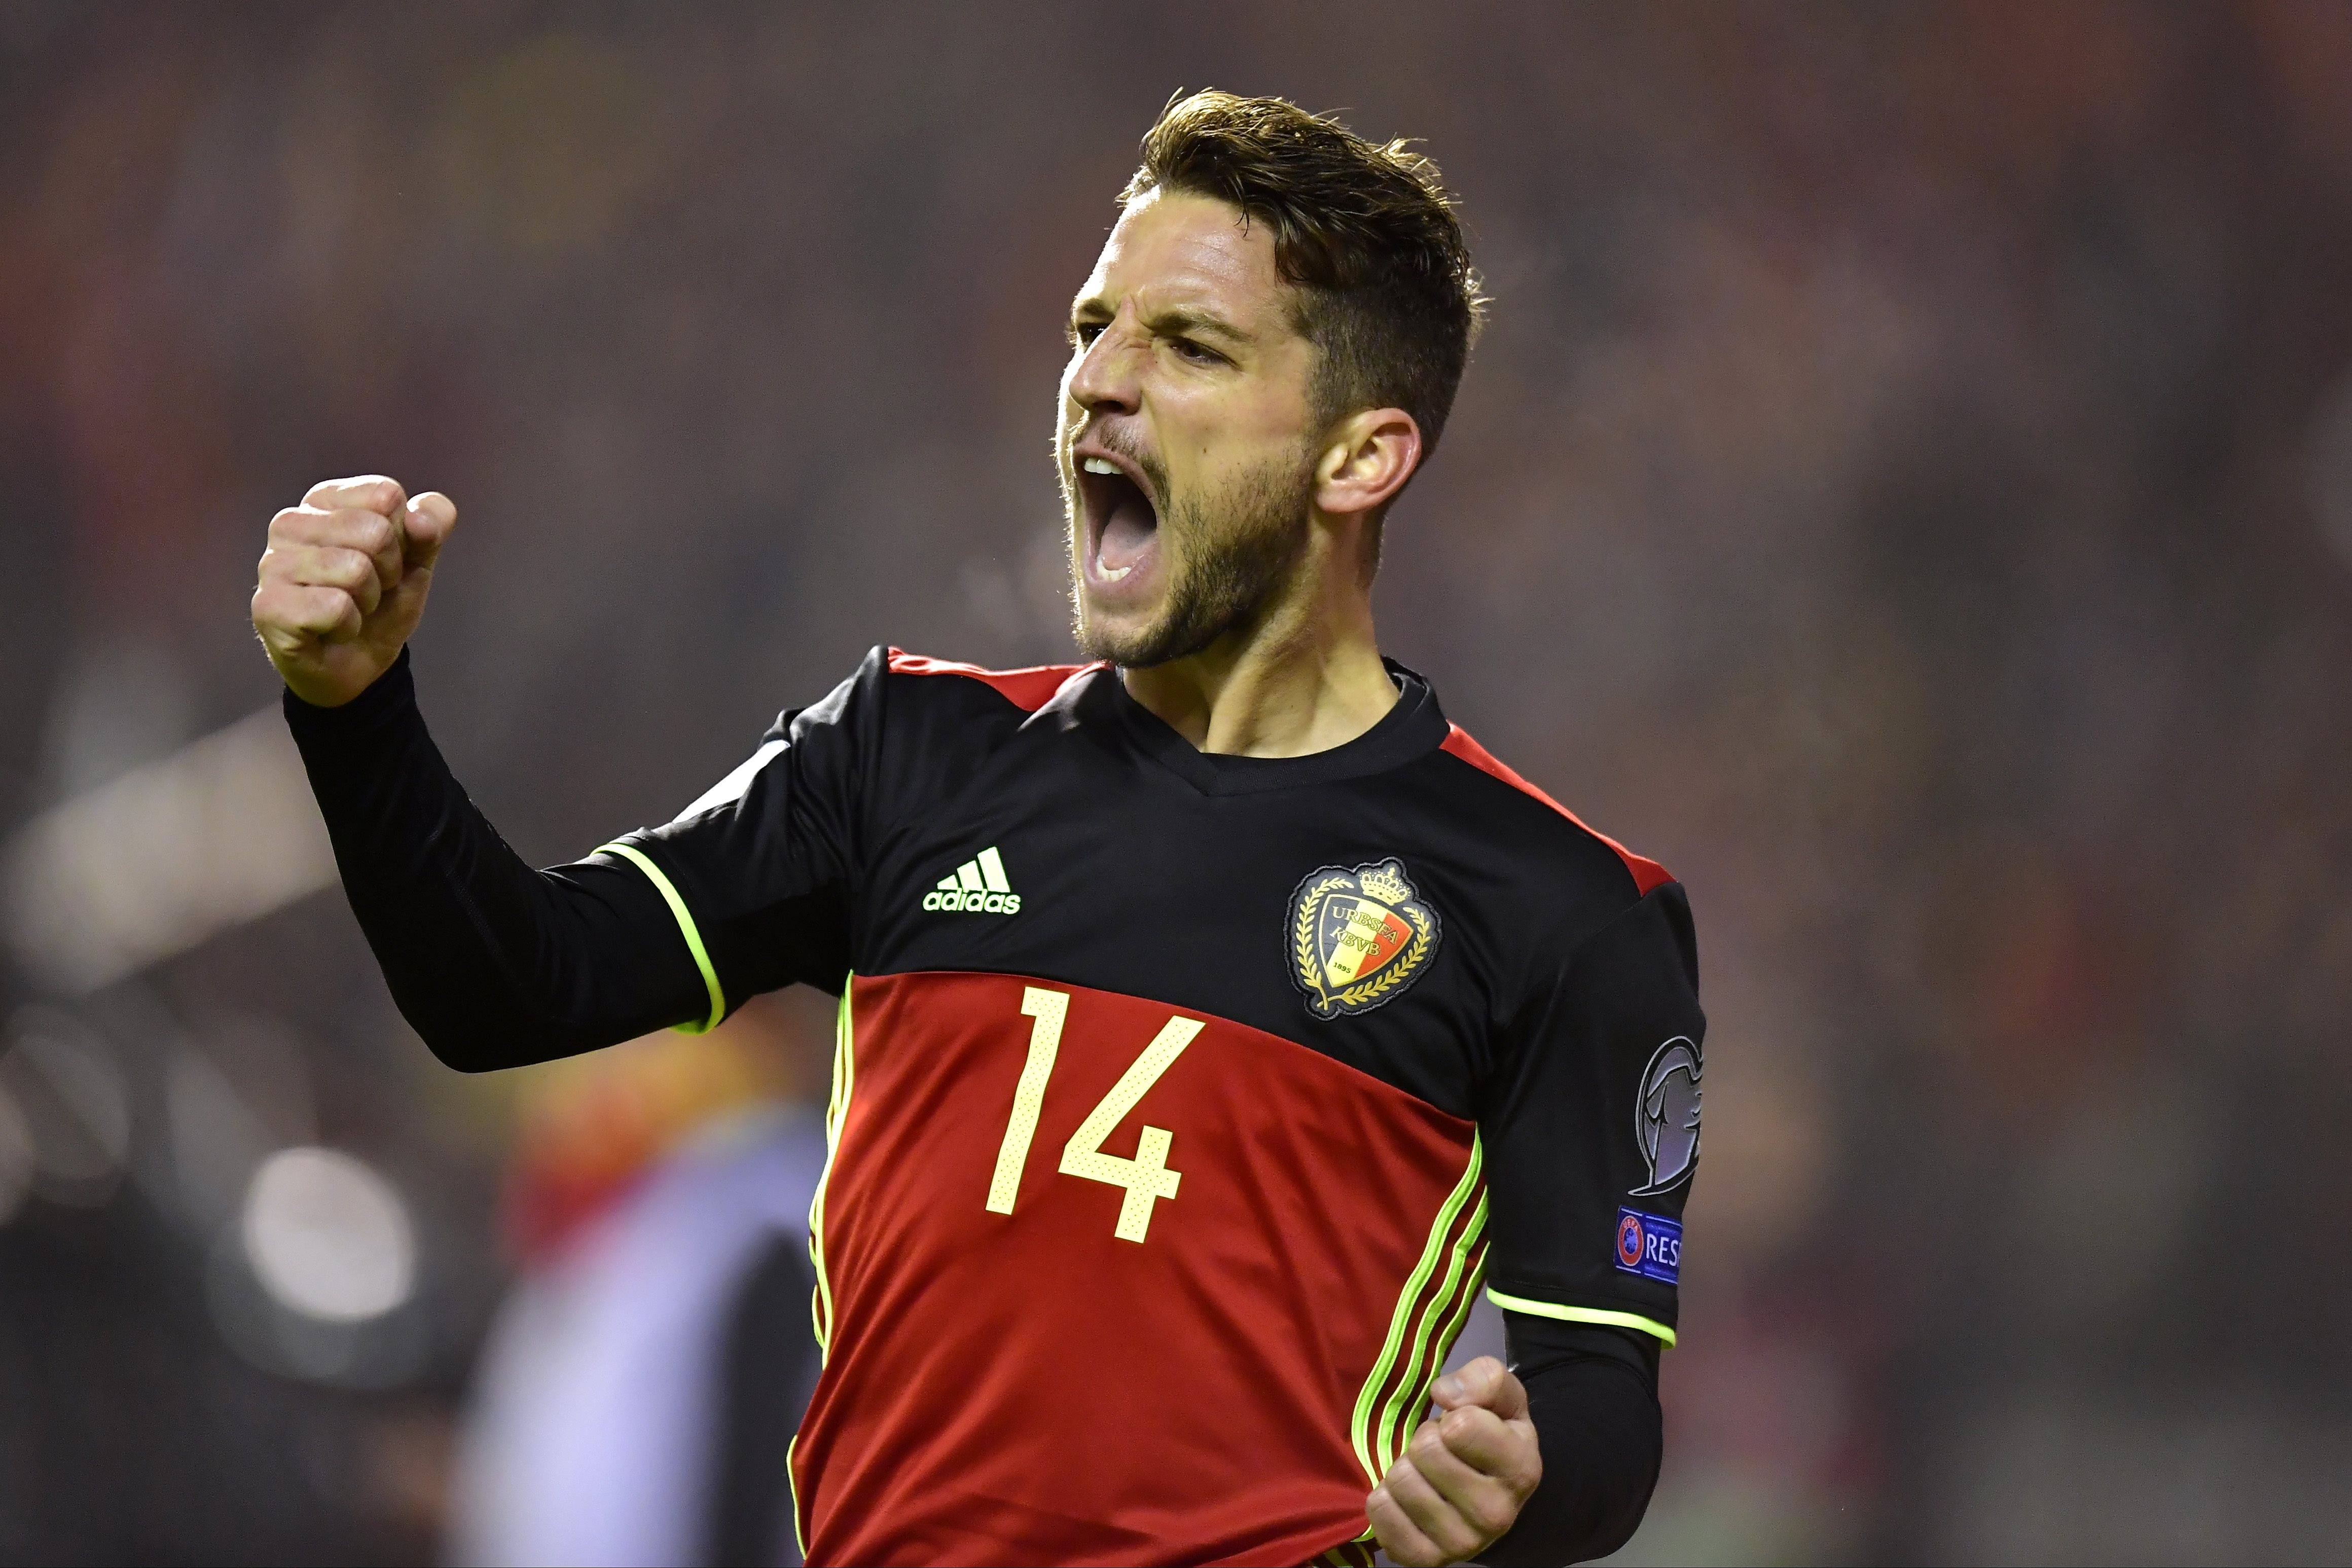 Dries Mertens turns down lucrative move to China